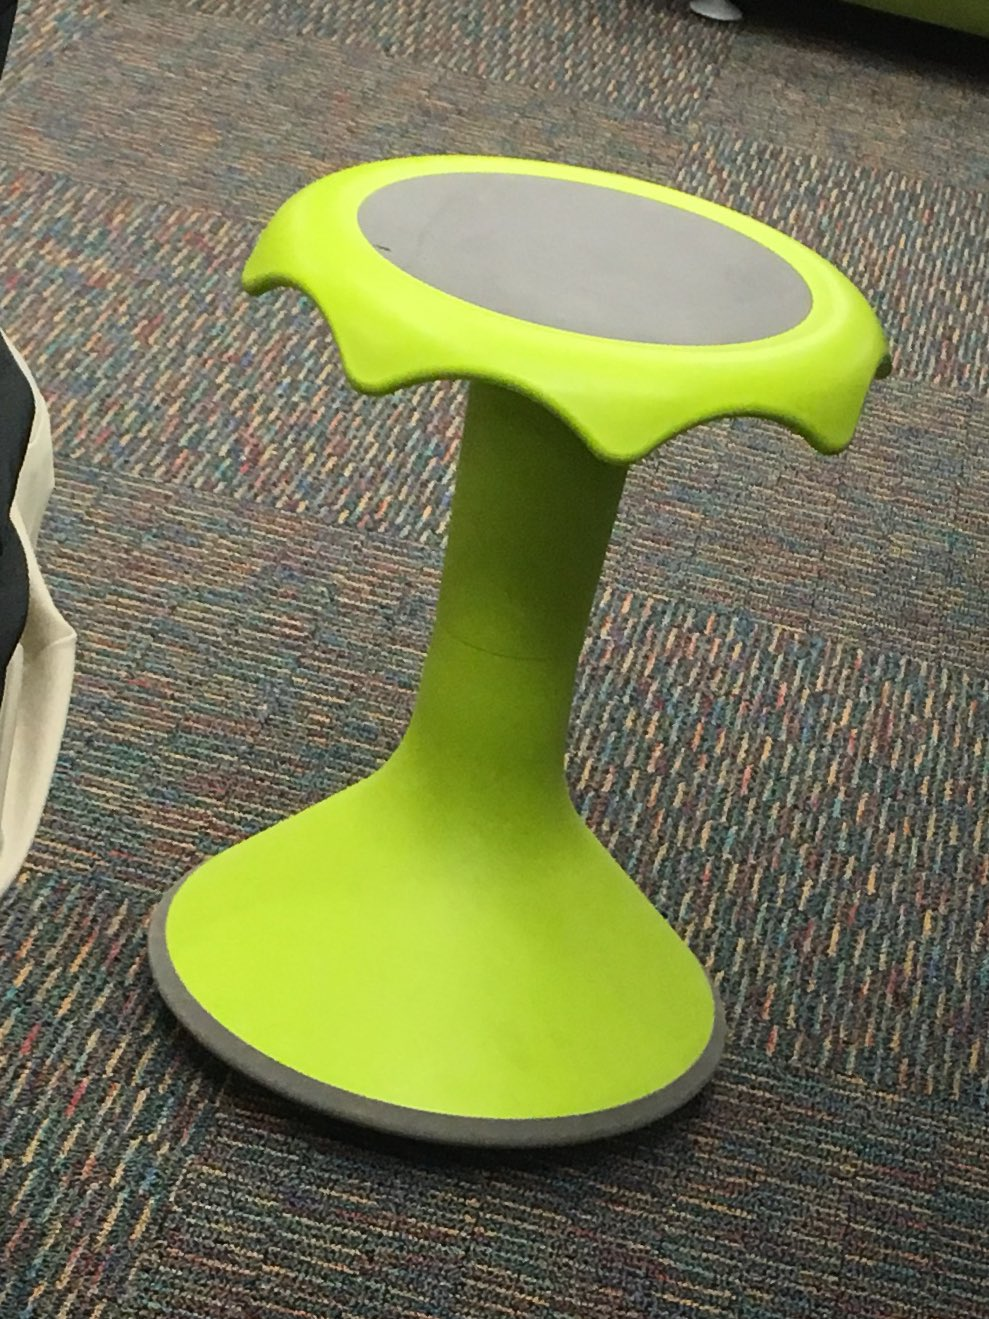 Great conversations about flexible seating & student choice. I want some of these wobble stools for my classroom!! 😍 #edcampliberty https://t.co/zRtfsz2qvh